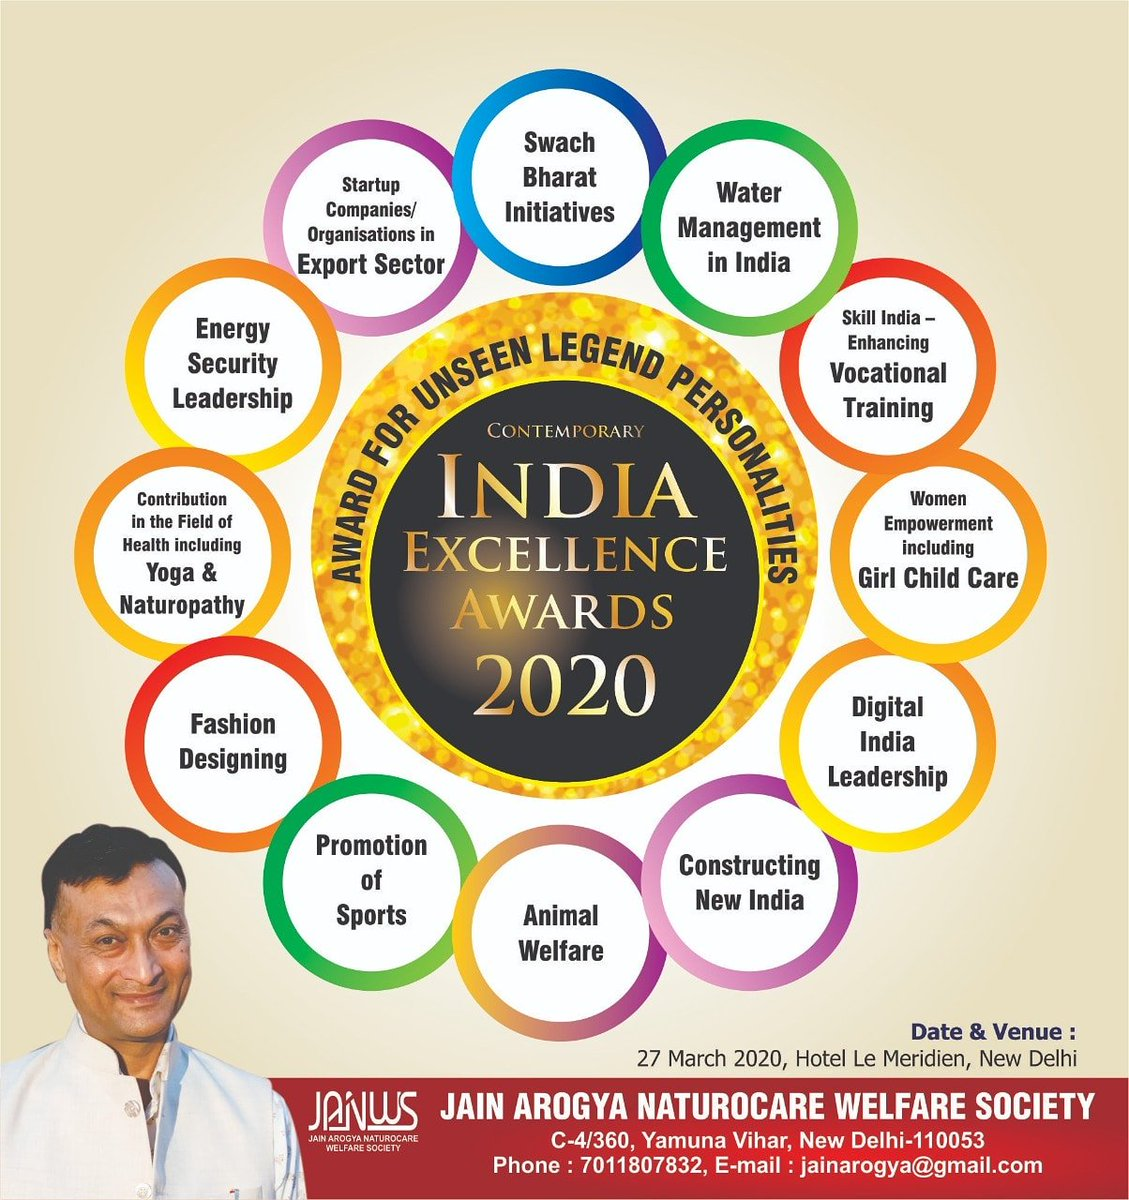 Ready for Mega Event held in New Delhi, Summit & Award Ceremony. #IndiaExellenceAwards2020 #ContemporaryIssue #India #NewDelhi #AnilJain #YogaGuru #DrAnilJain #Health #Yoga #Fitness #Healthy #Nation #MegaEvent #Summit #AwardFunction